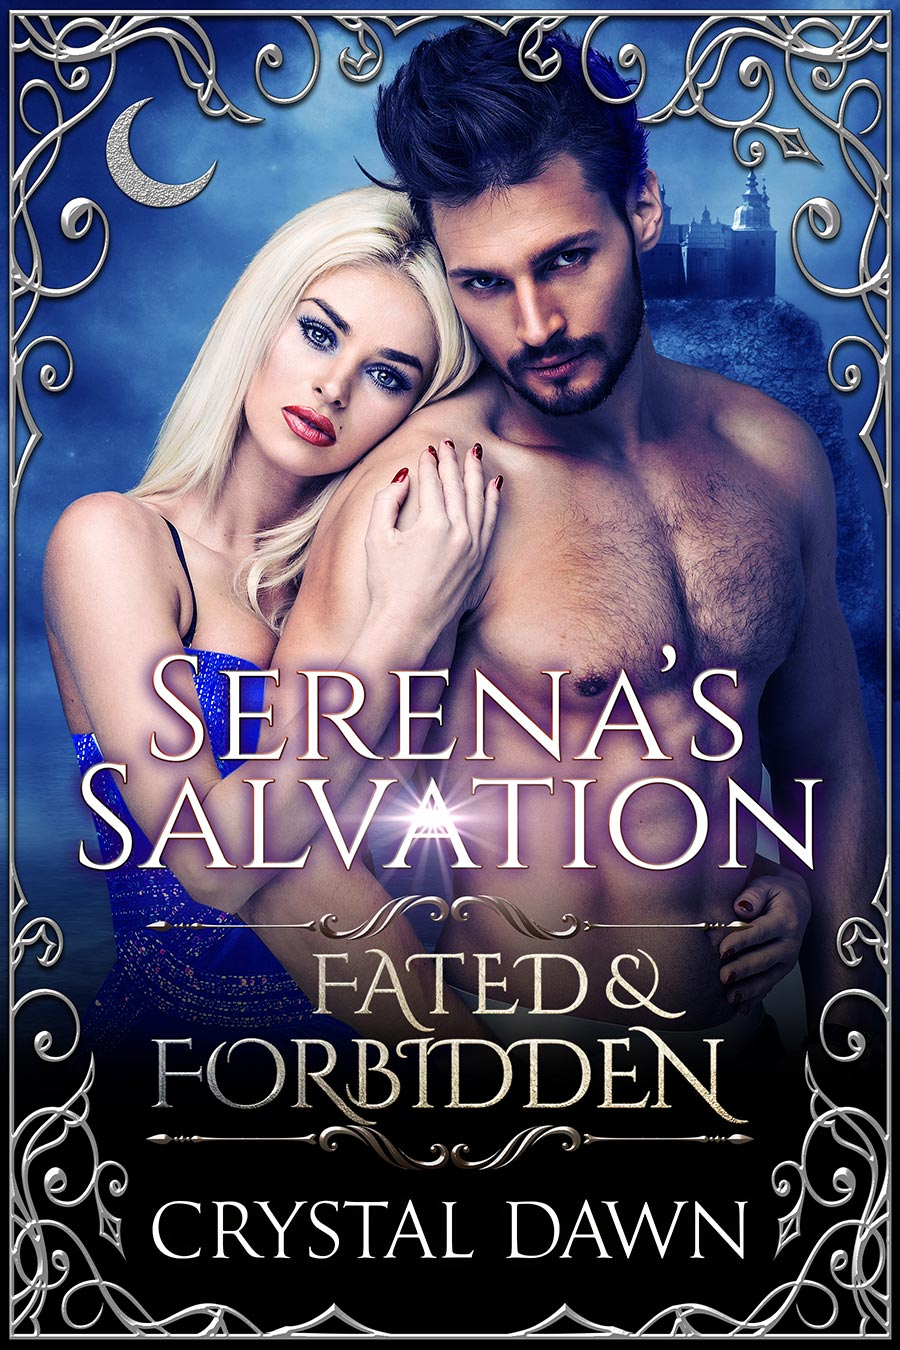 Fated-and-Forbidden---Serenas-Salvation---Crystal-Dawn.jpg